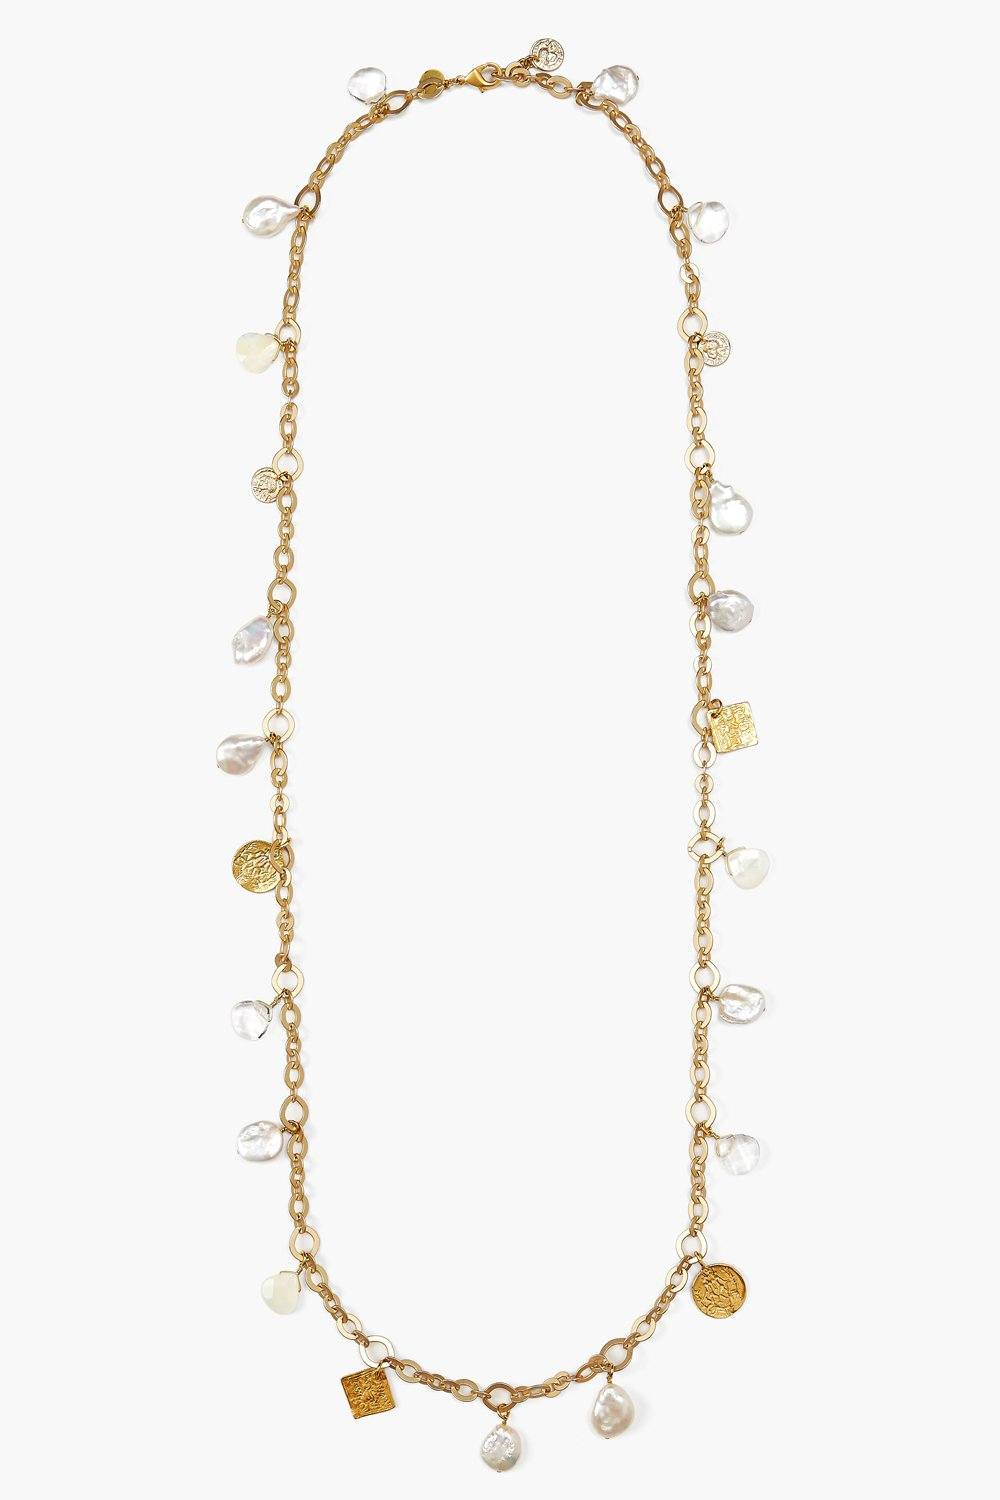 White Pearl Mix Gold Charm Long Necklace